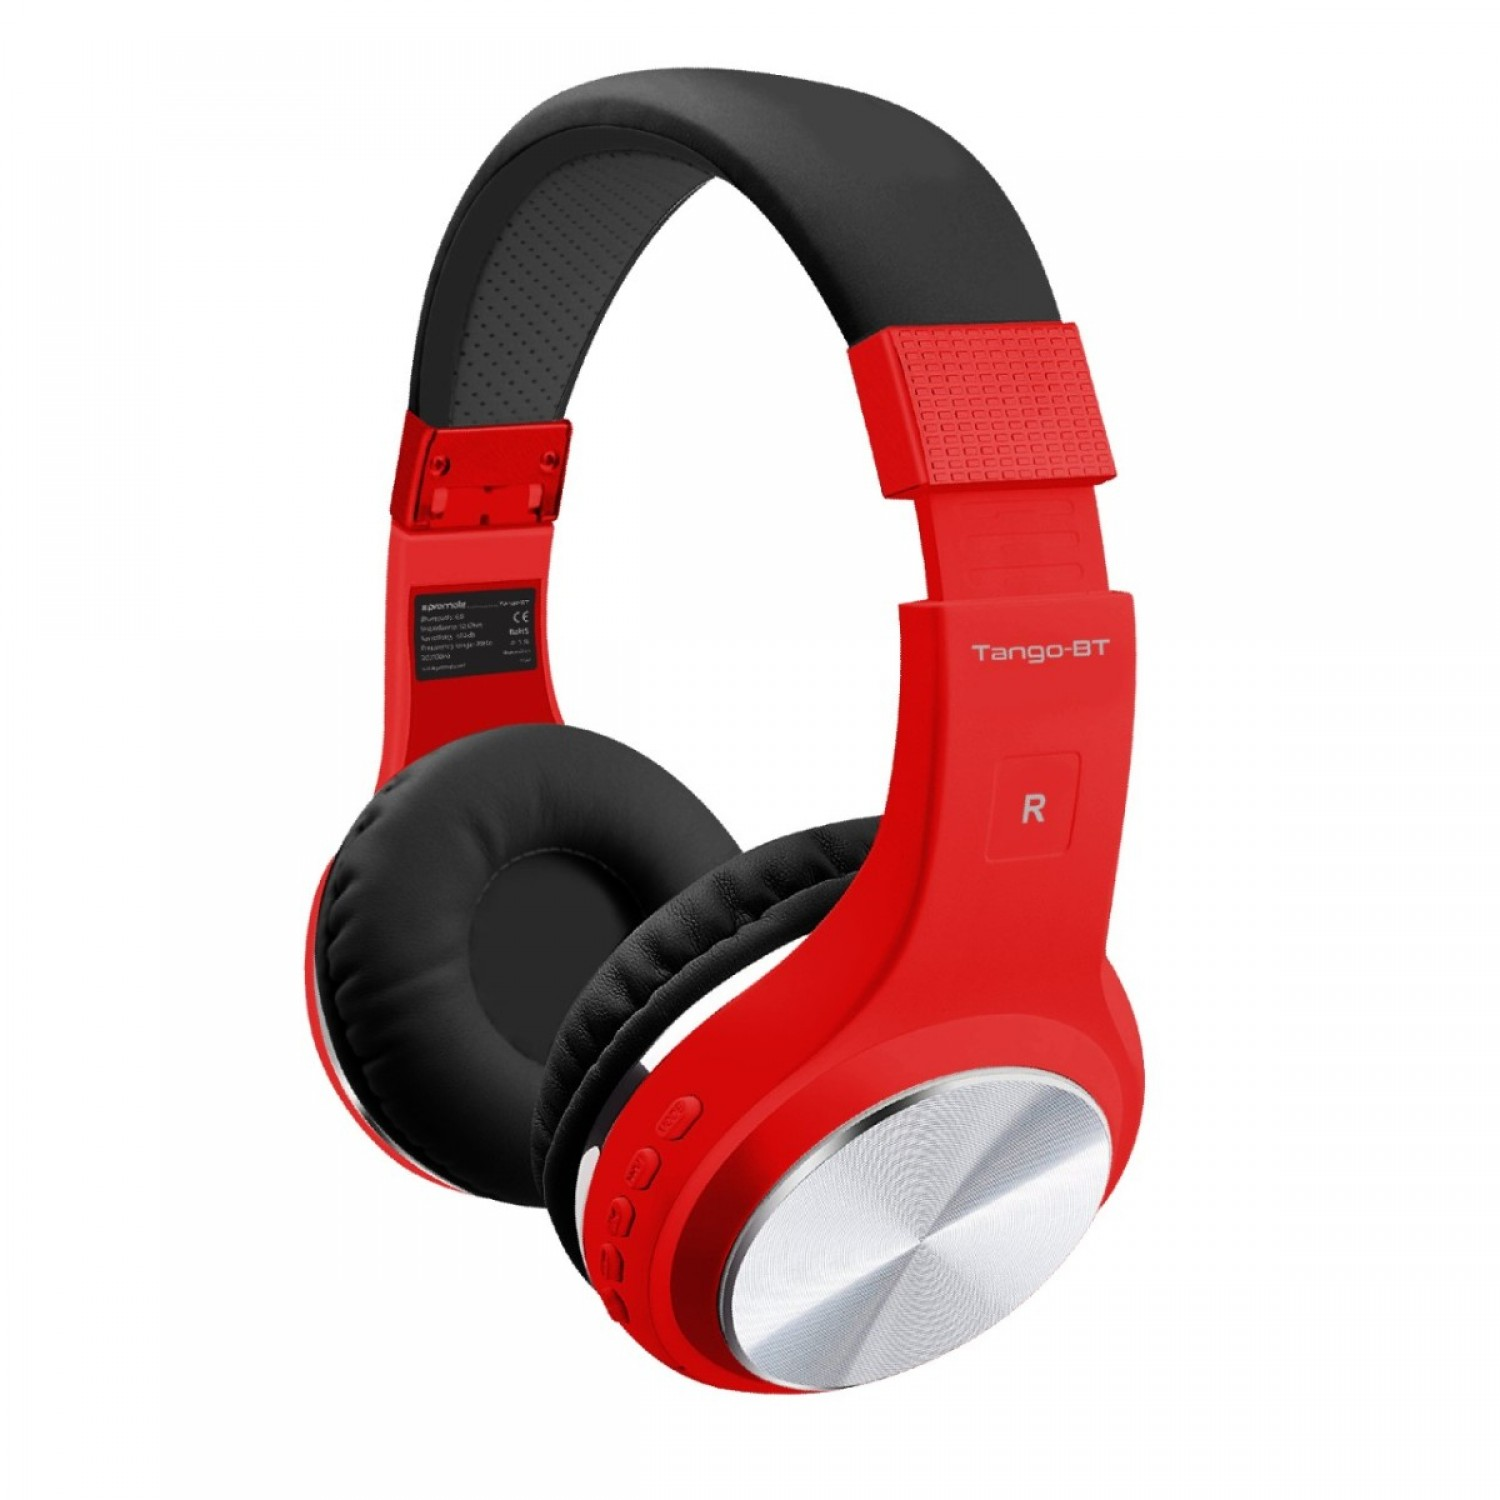 Promate Wireless Headphones, Foldable Bluetooth Stereo Adjustable Headset with Built-In TF Card slot, Microphones, Noise Cancelling and Wired Mode for All Bluetooth and Aux Enabled Devices, Tango-BT Red